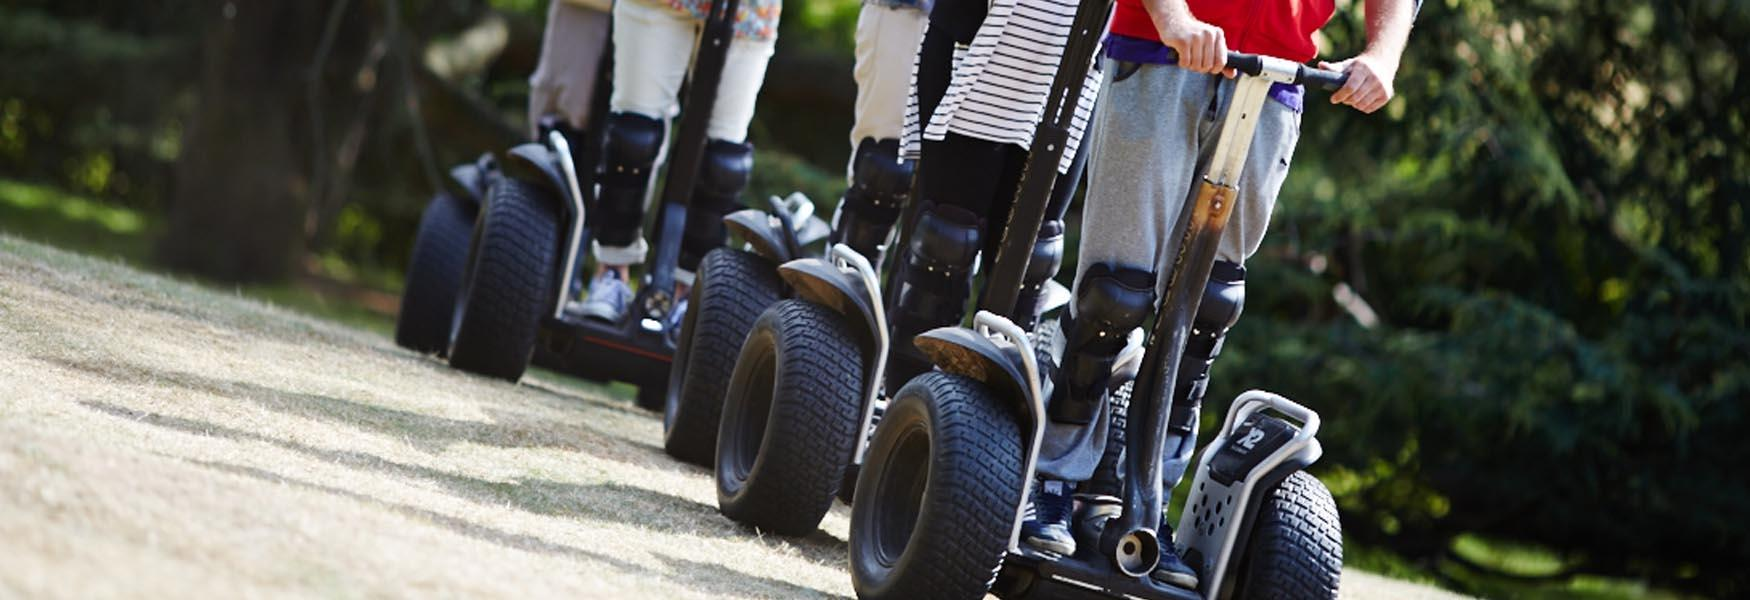 Segway Events in Mote Park